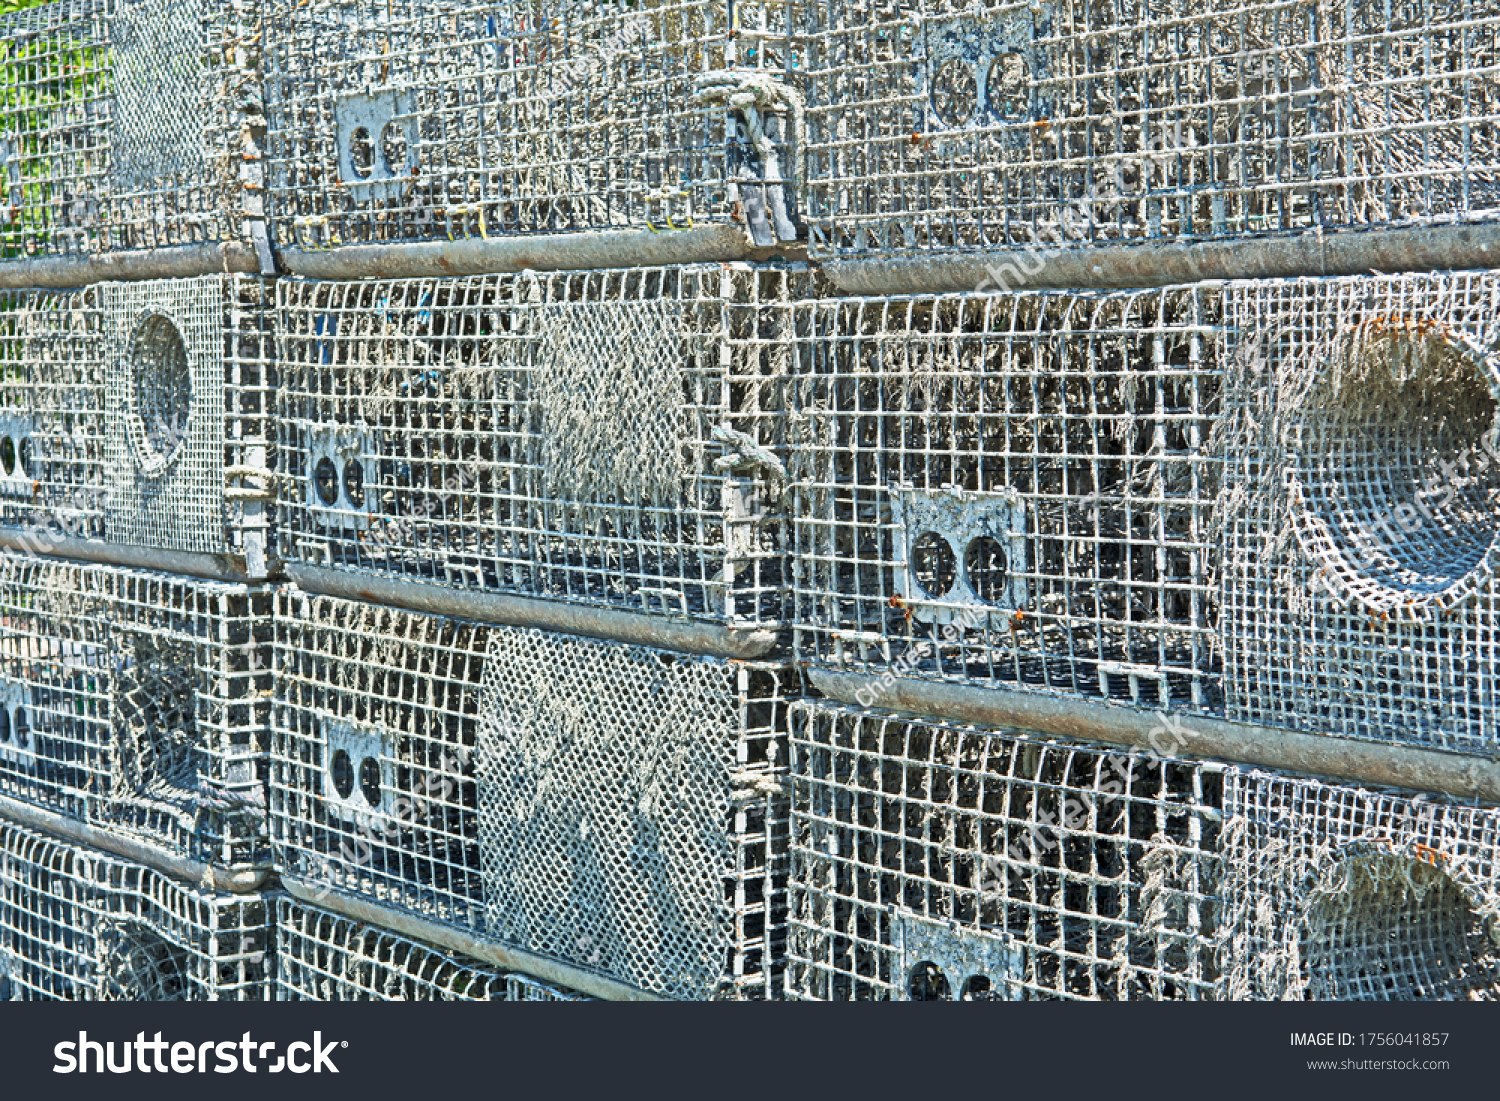 A stack of lobster traps, also known as lobster pots, near a fishing port in Massachusetts